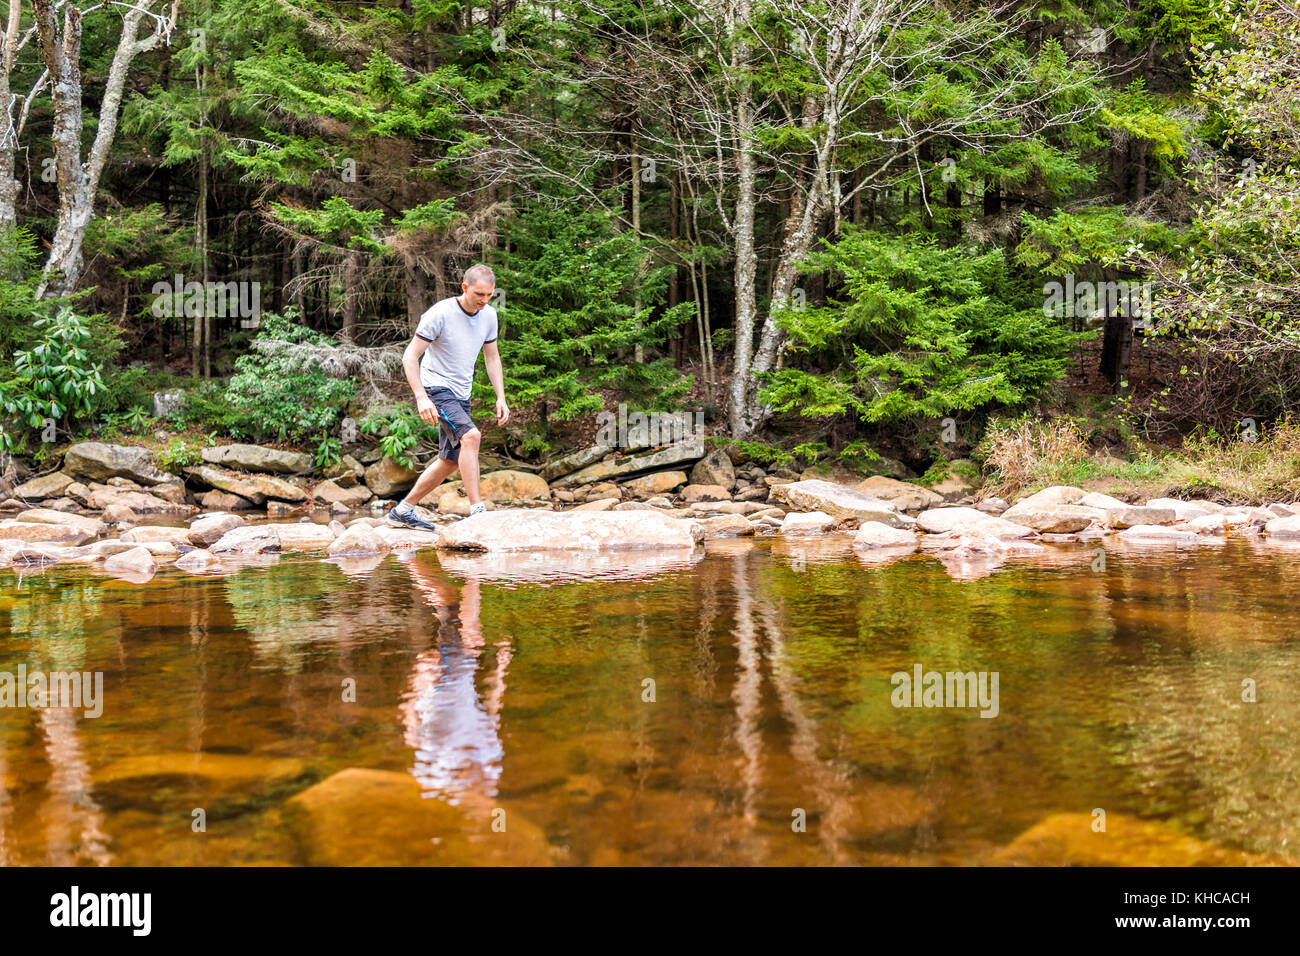 Young man crossing peaceful, calm Red Creek river in Dolly Sods, West Virginia during sunny day with reflection - Stock Image